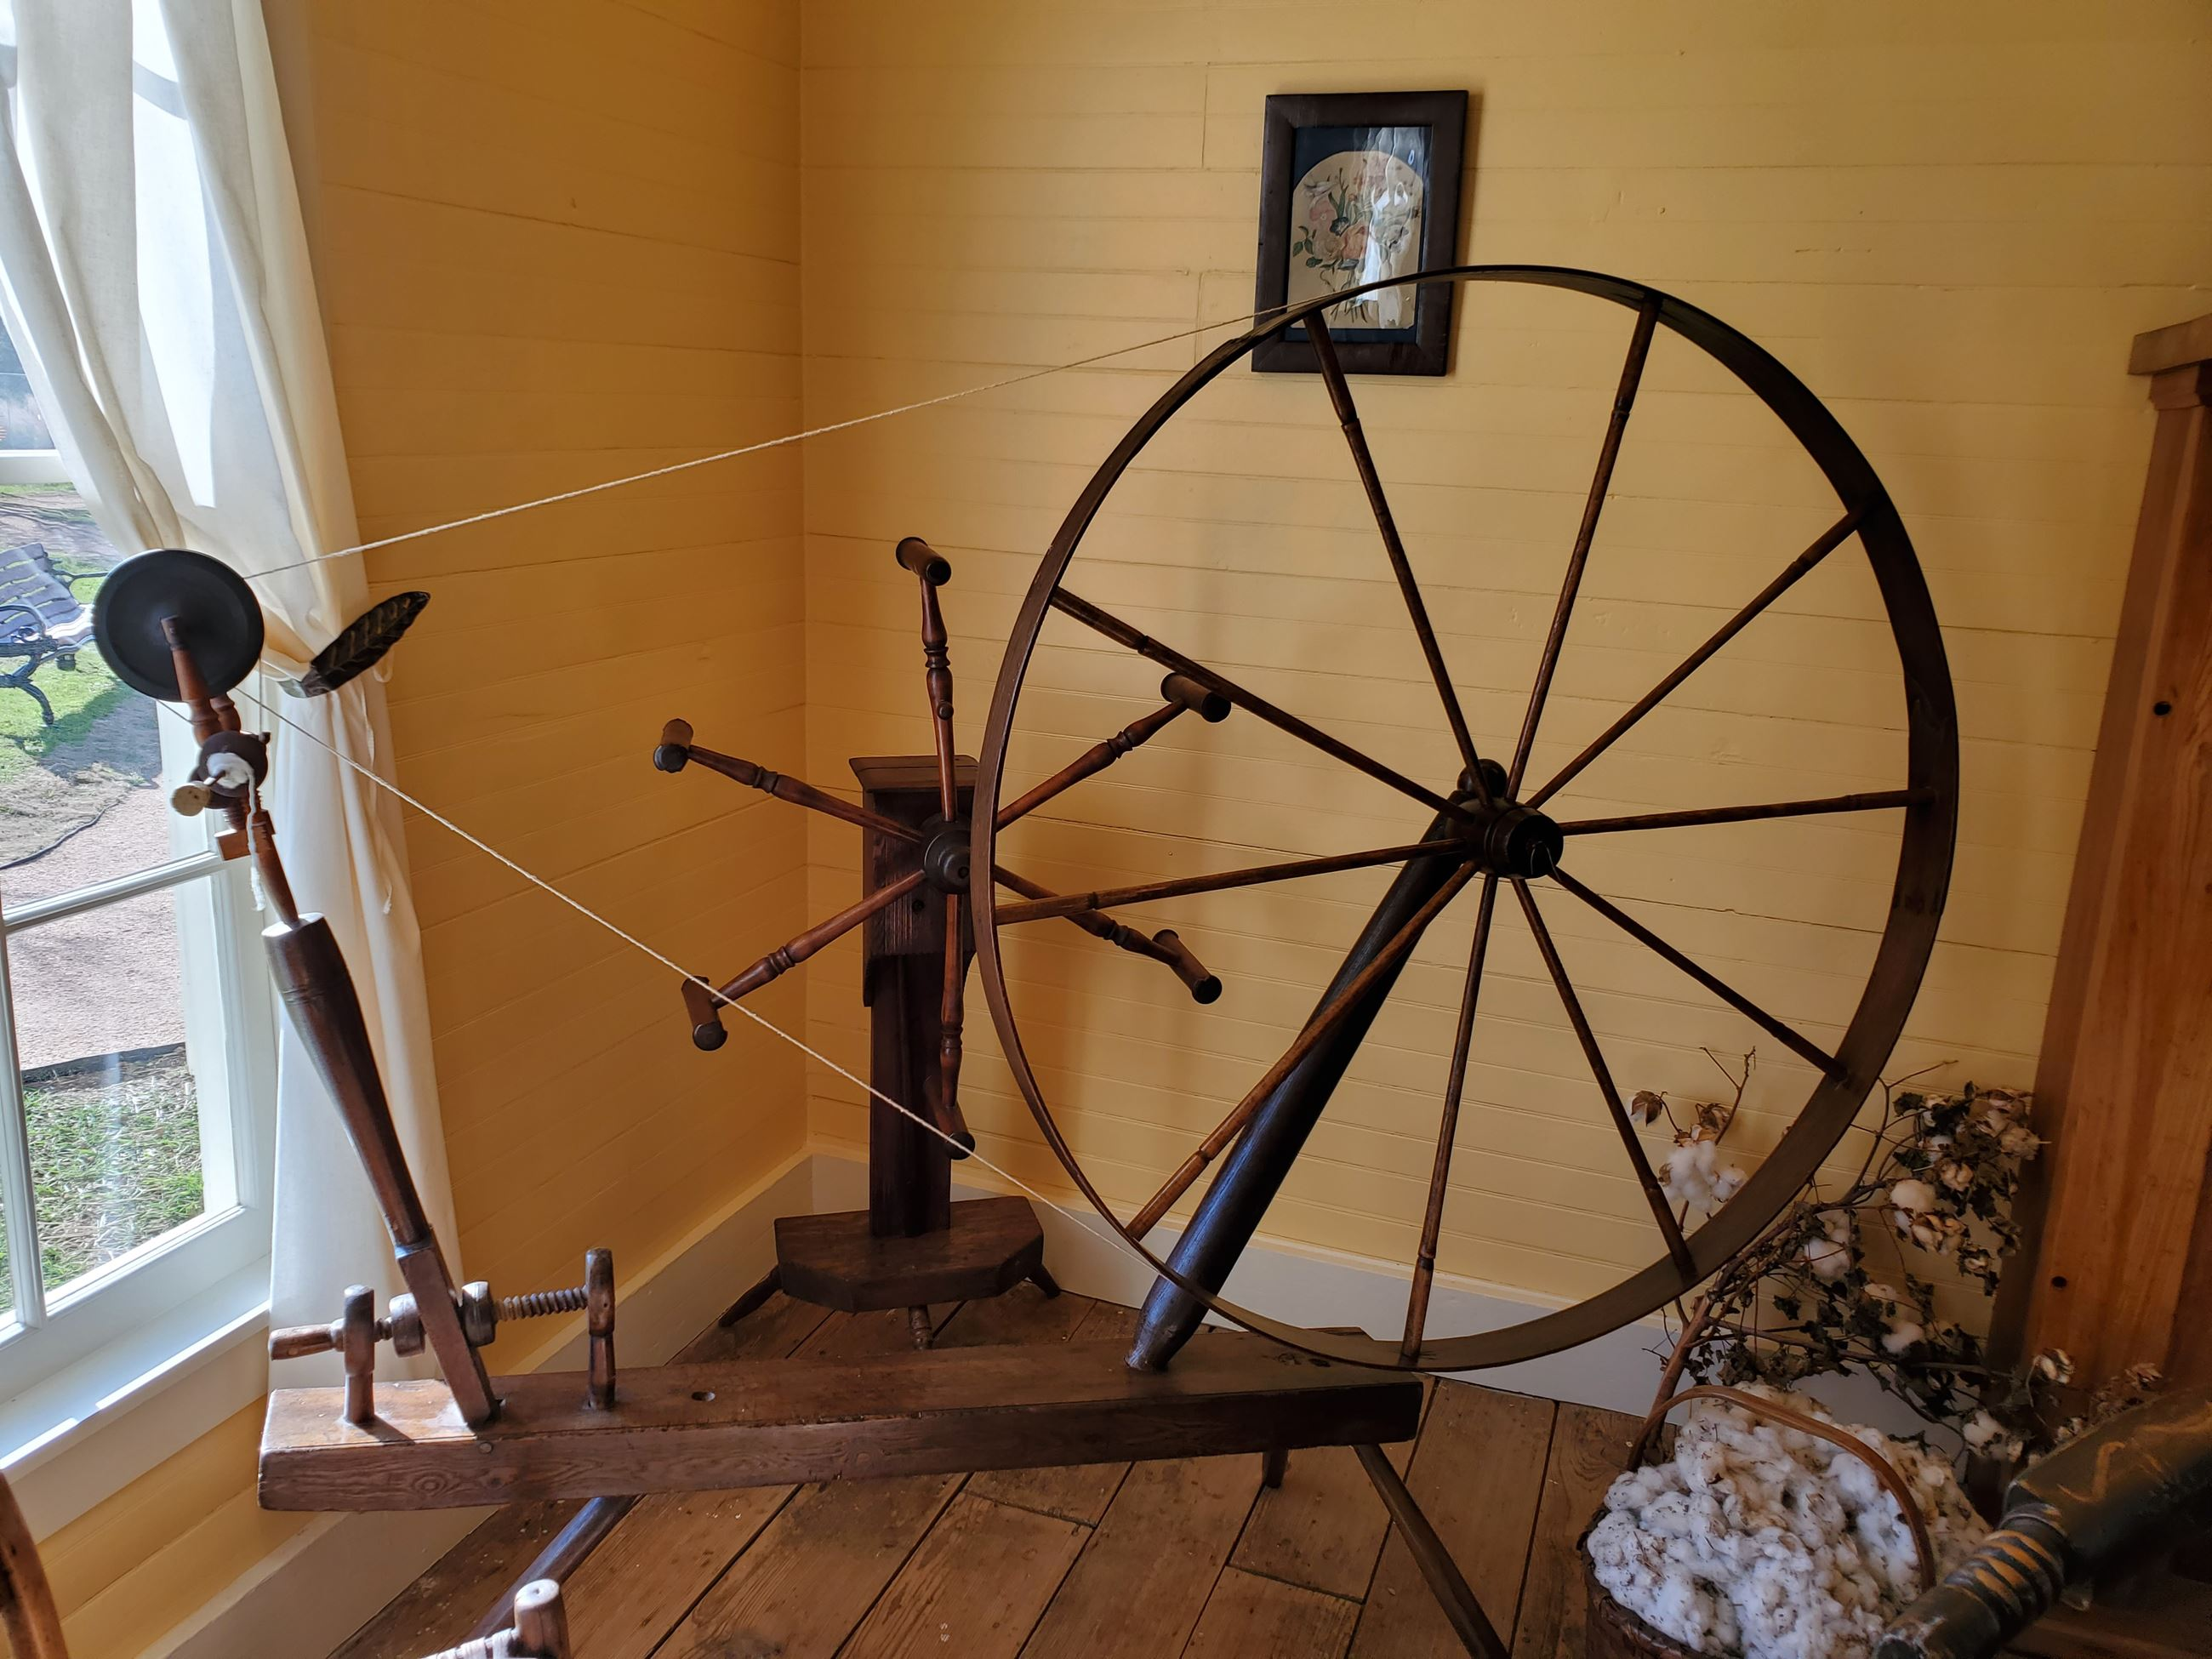 Spining Wheel and Yarn Winder